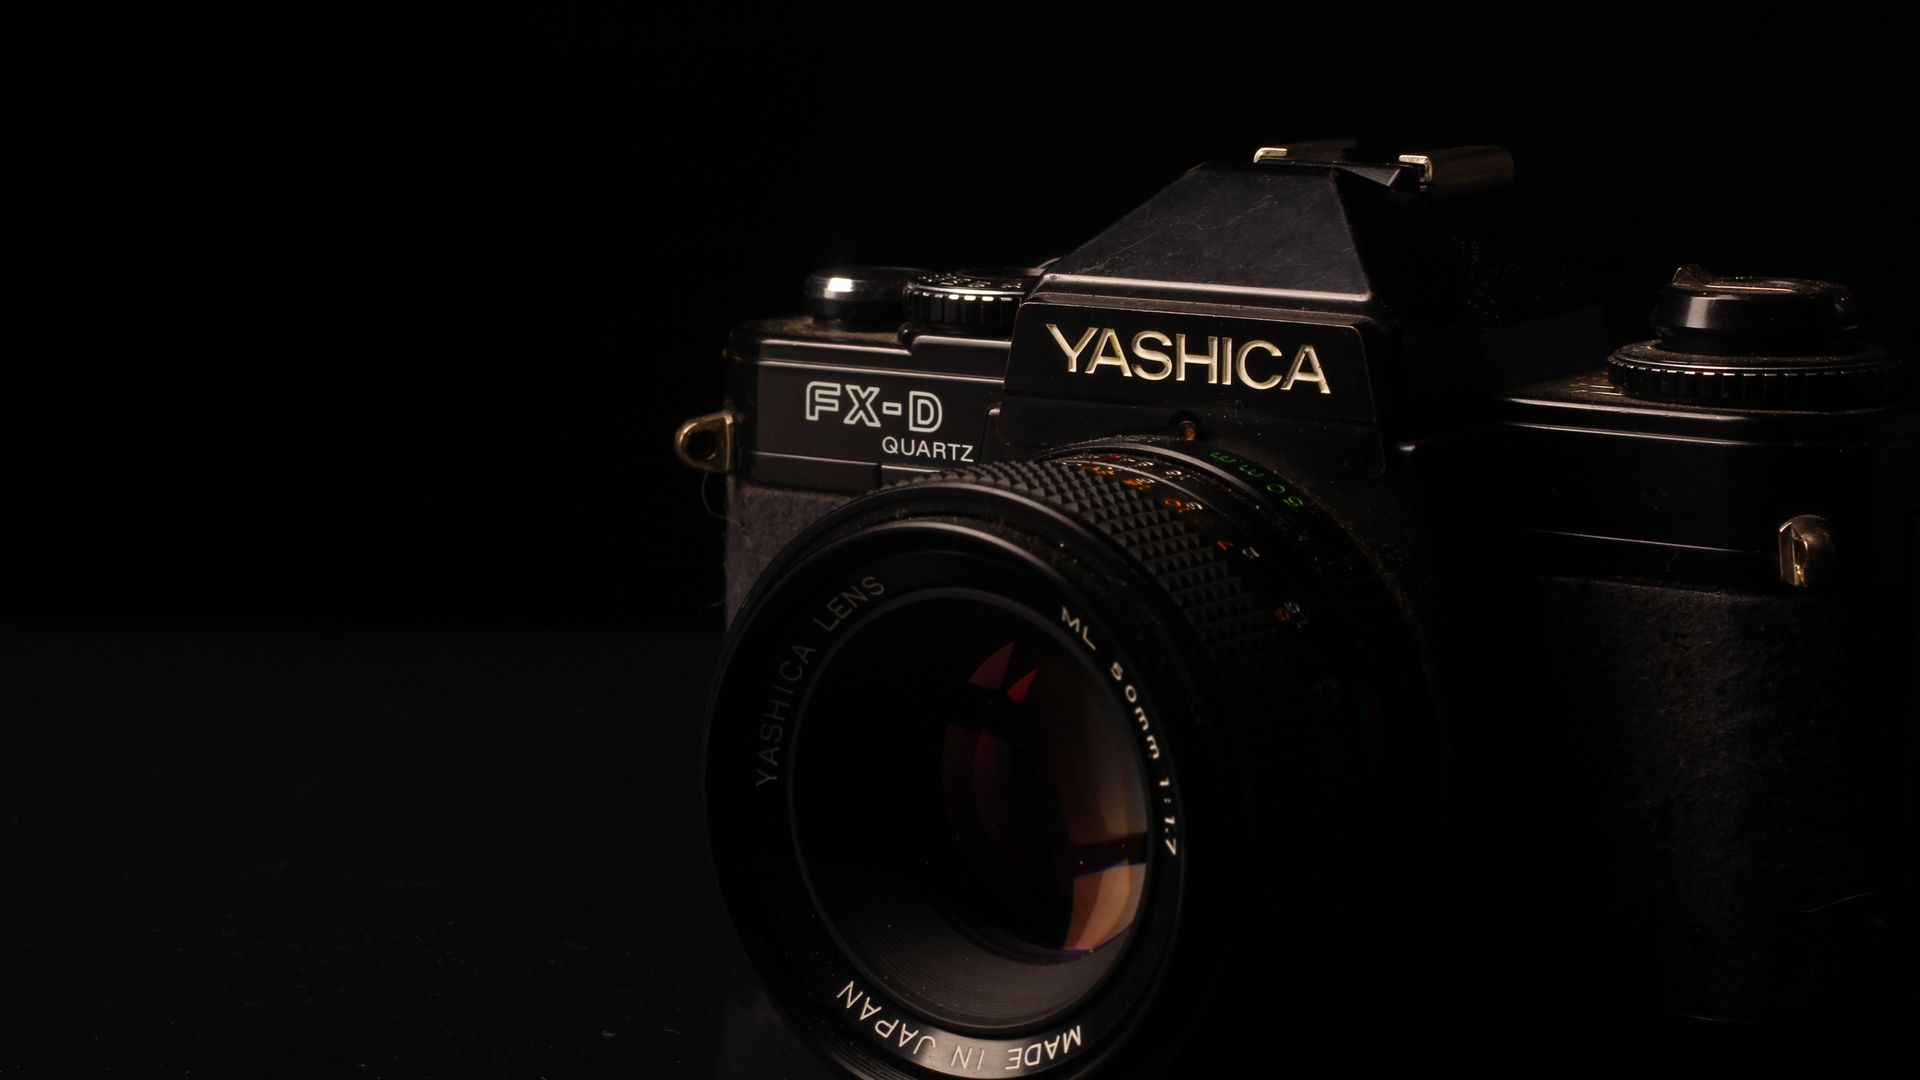 Yashica FX D Camera Dark Wallpaper   Wallpaper Stream 1920x1080